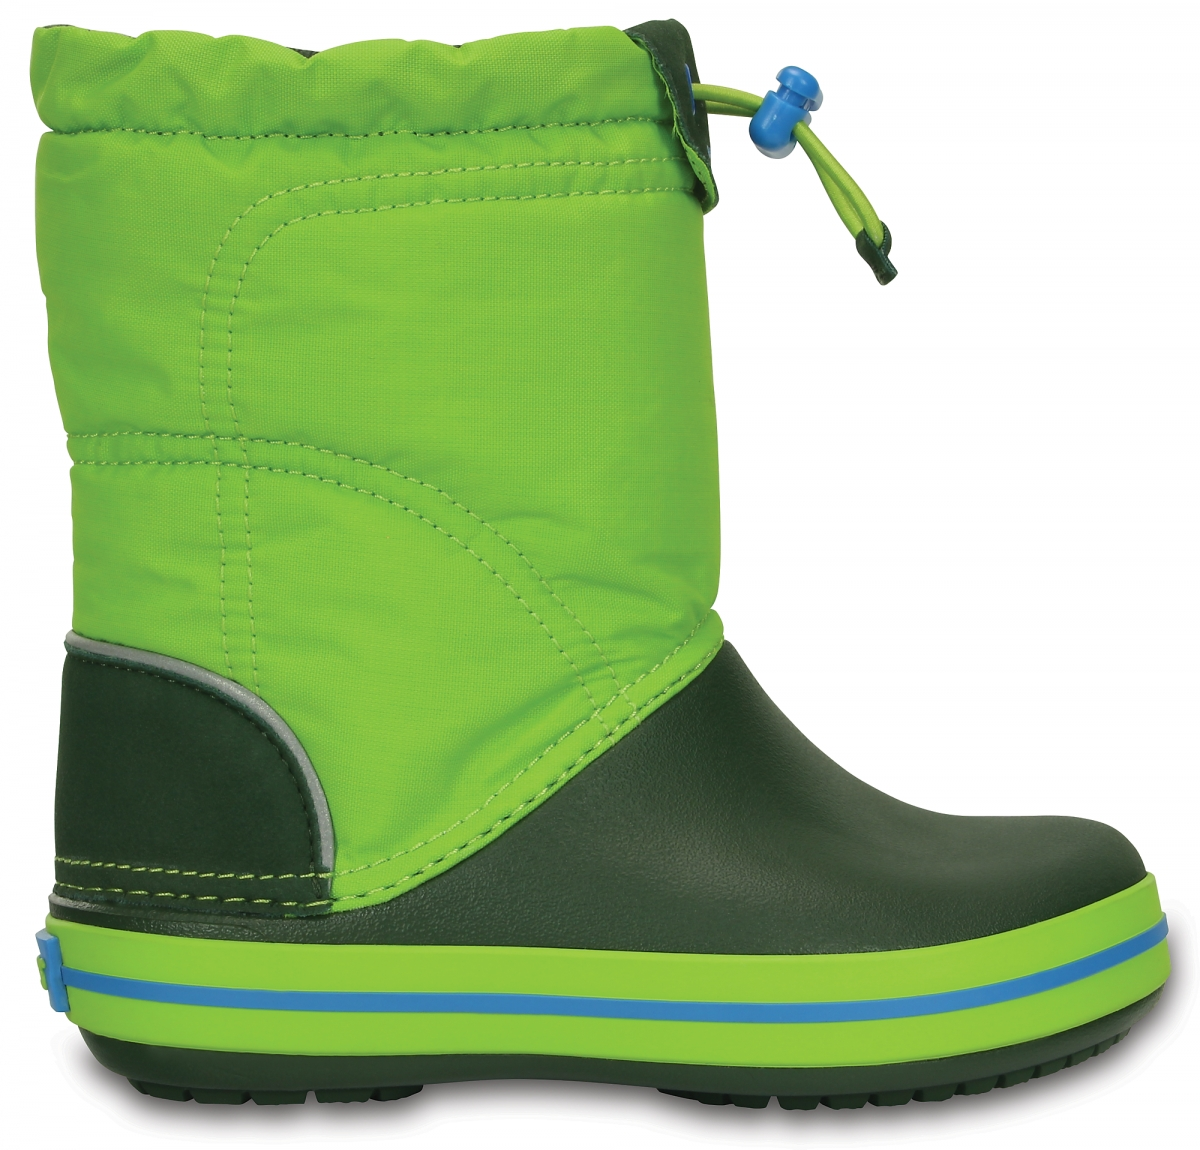 Crocs Crocband LodgePoint Boot Kids - Lime/Forest Green, J1 (32-33)